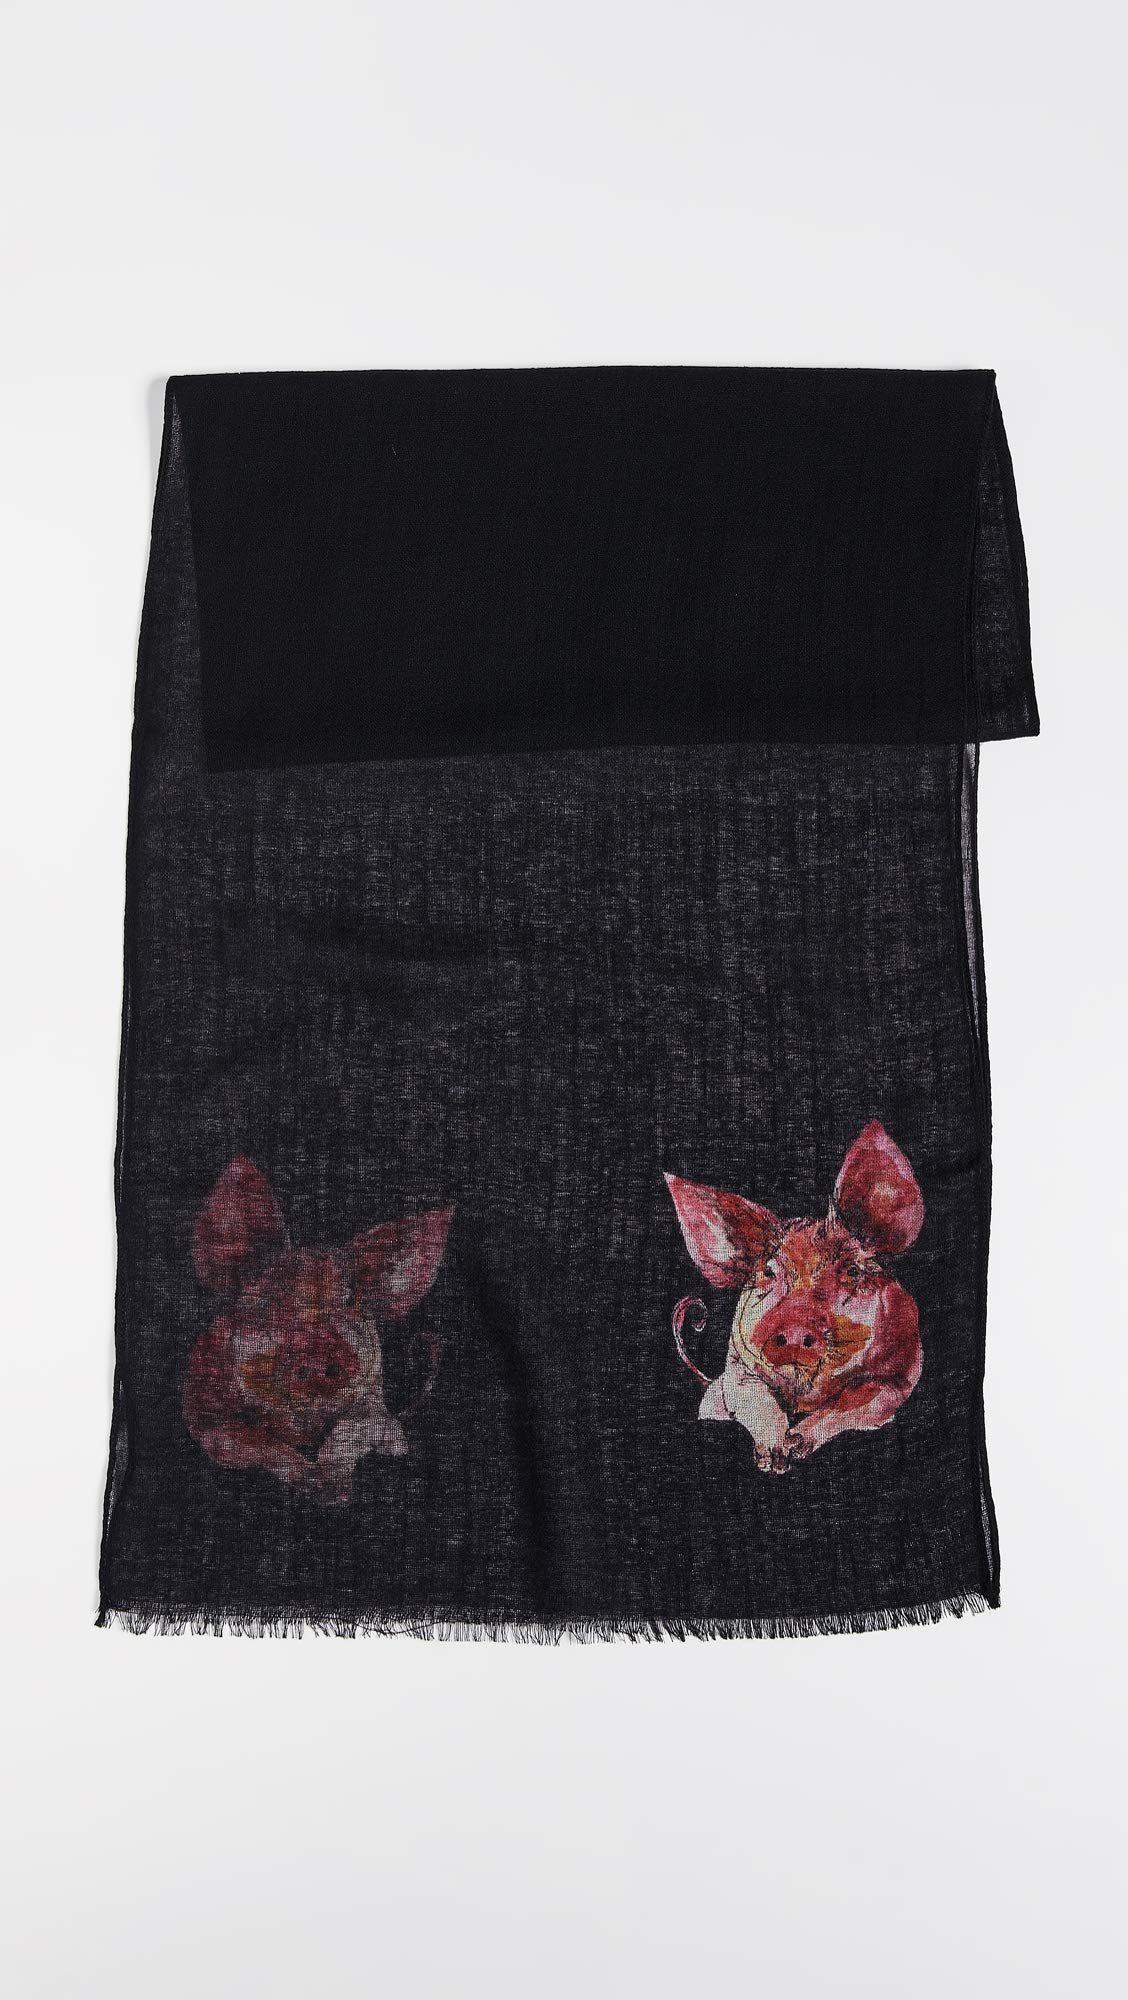 Paul Smith Men's Pig Scarf, Black, One Size by Paul Smith (Image #3)